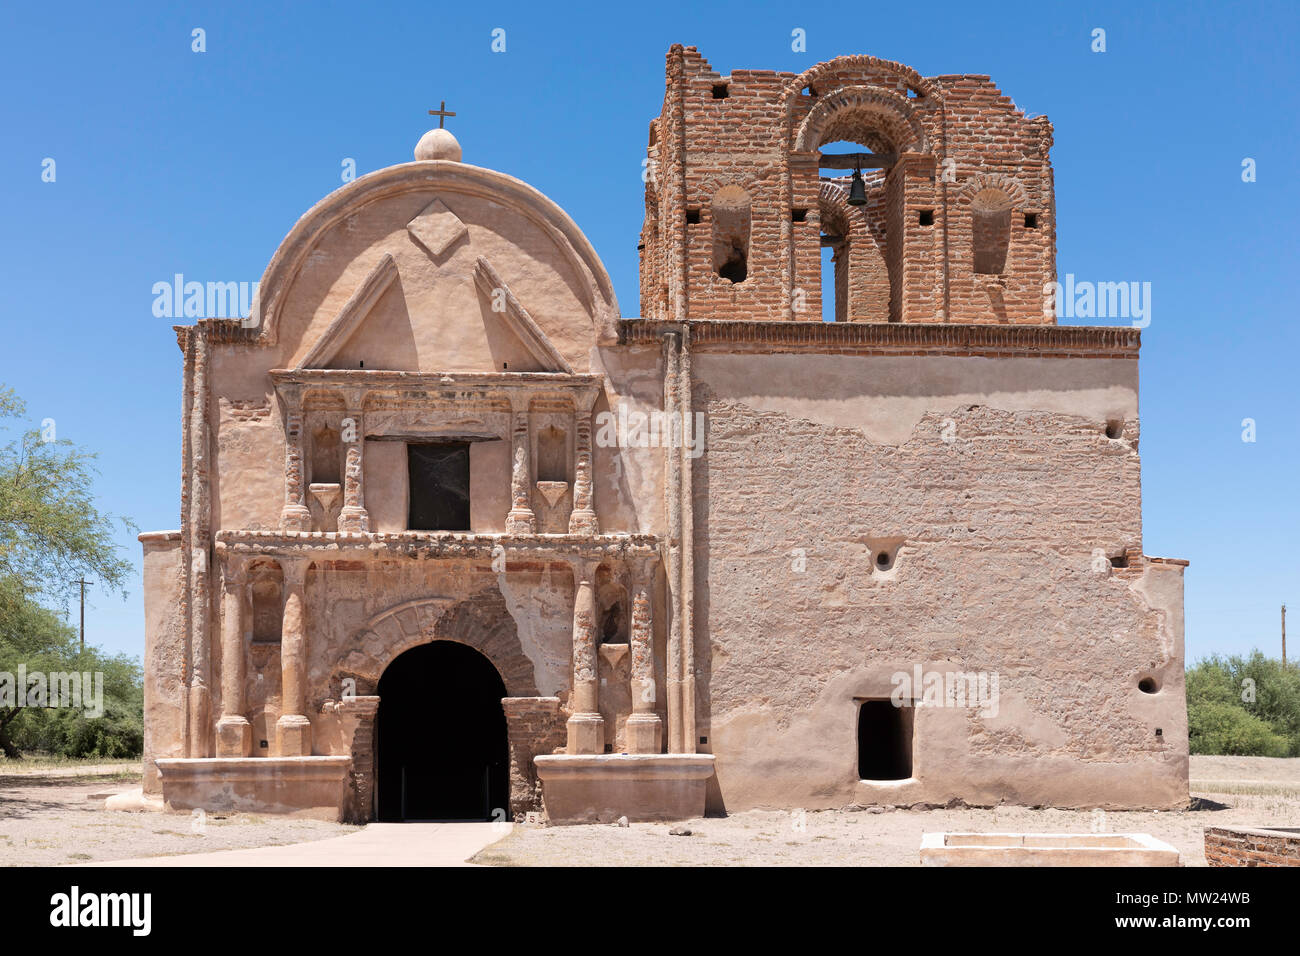 Tumacacori Mission, Tumacacori  National Historical Park, Arizona - Stock Image